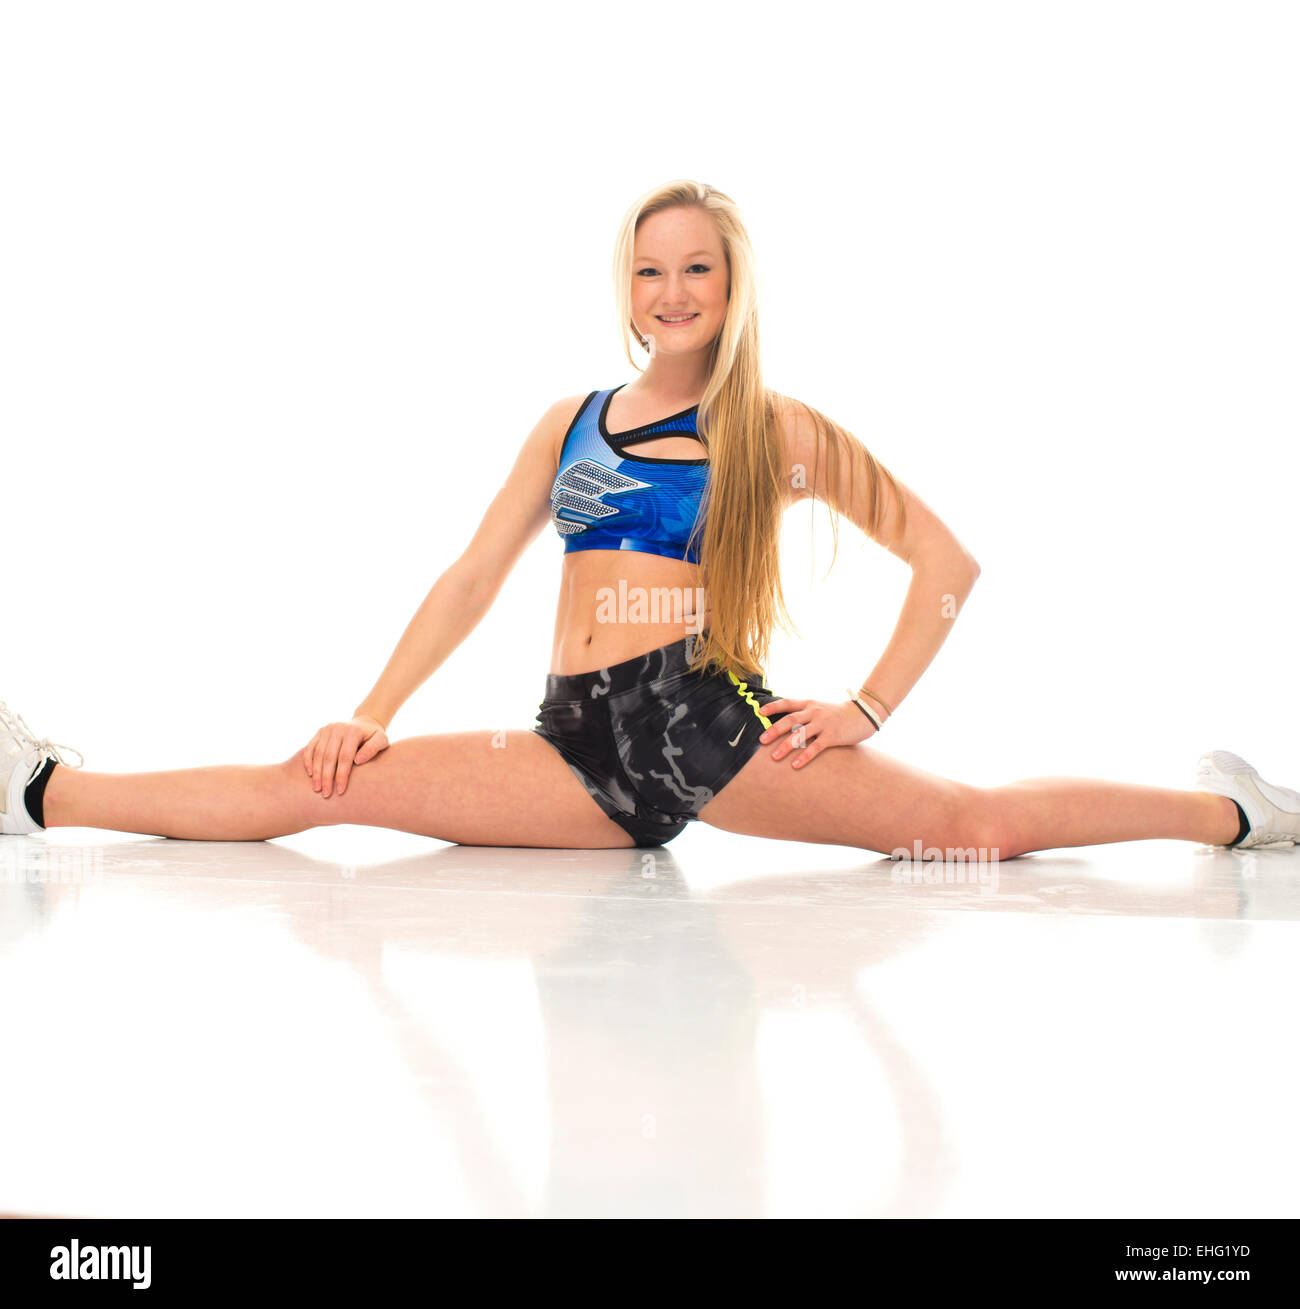 A Young Flexible Stretchy Sporty Fit Woman 19 Year Old Teenage Girl Wearing Sportwear Stretching Exercising Keeping Fit Doing The Splits Uk